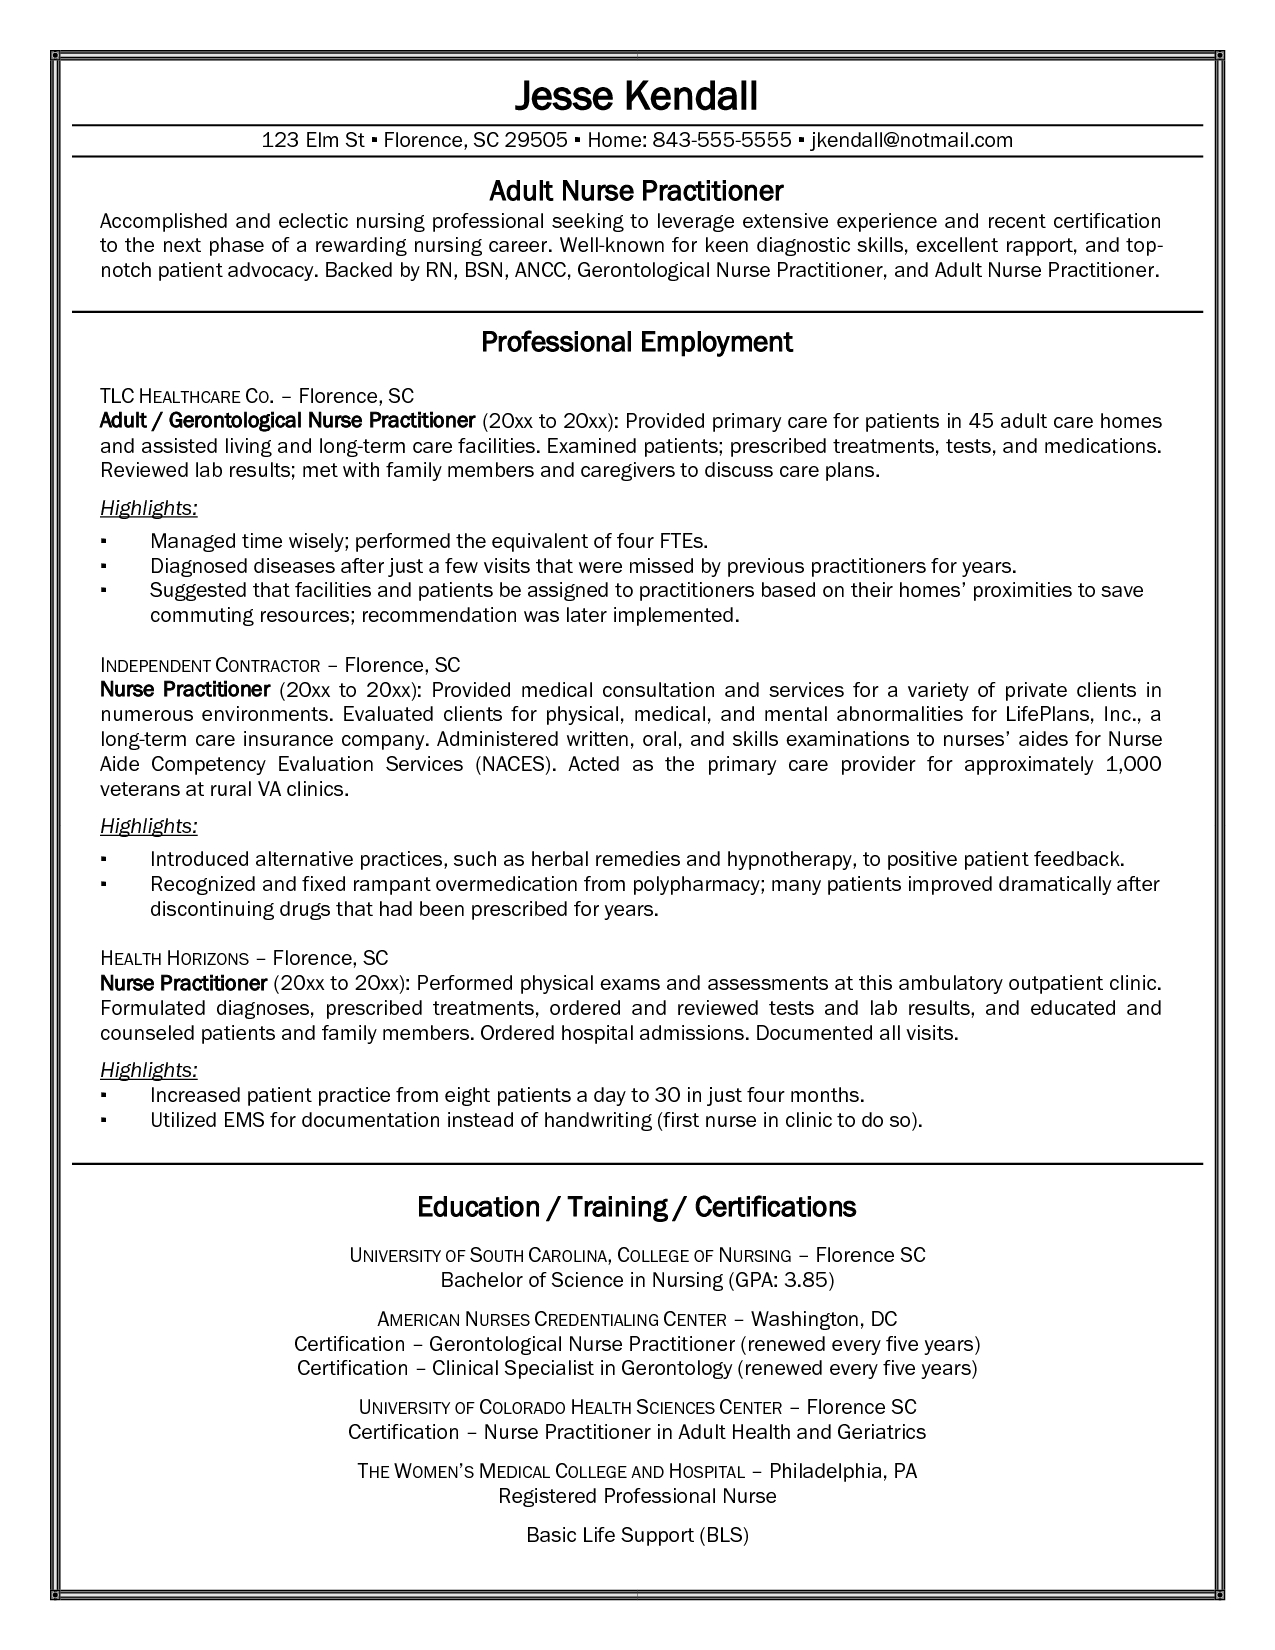 Good cv template ahpra - Addictips